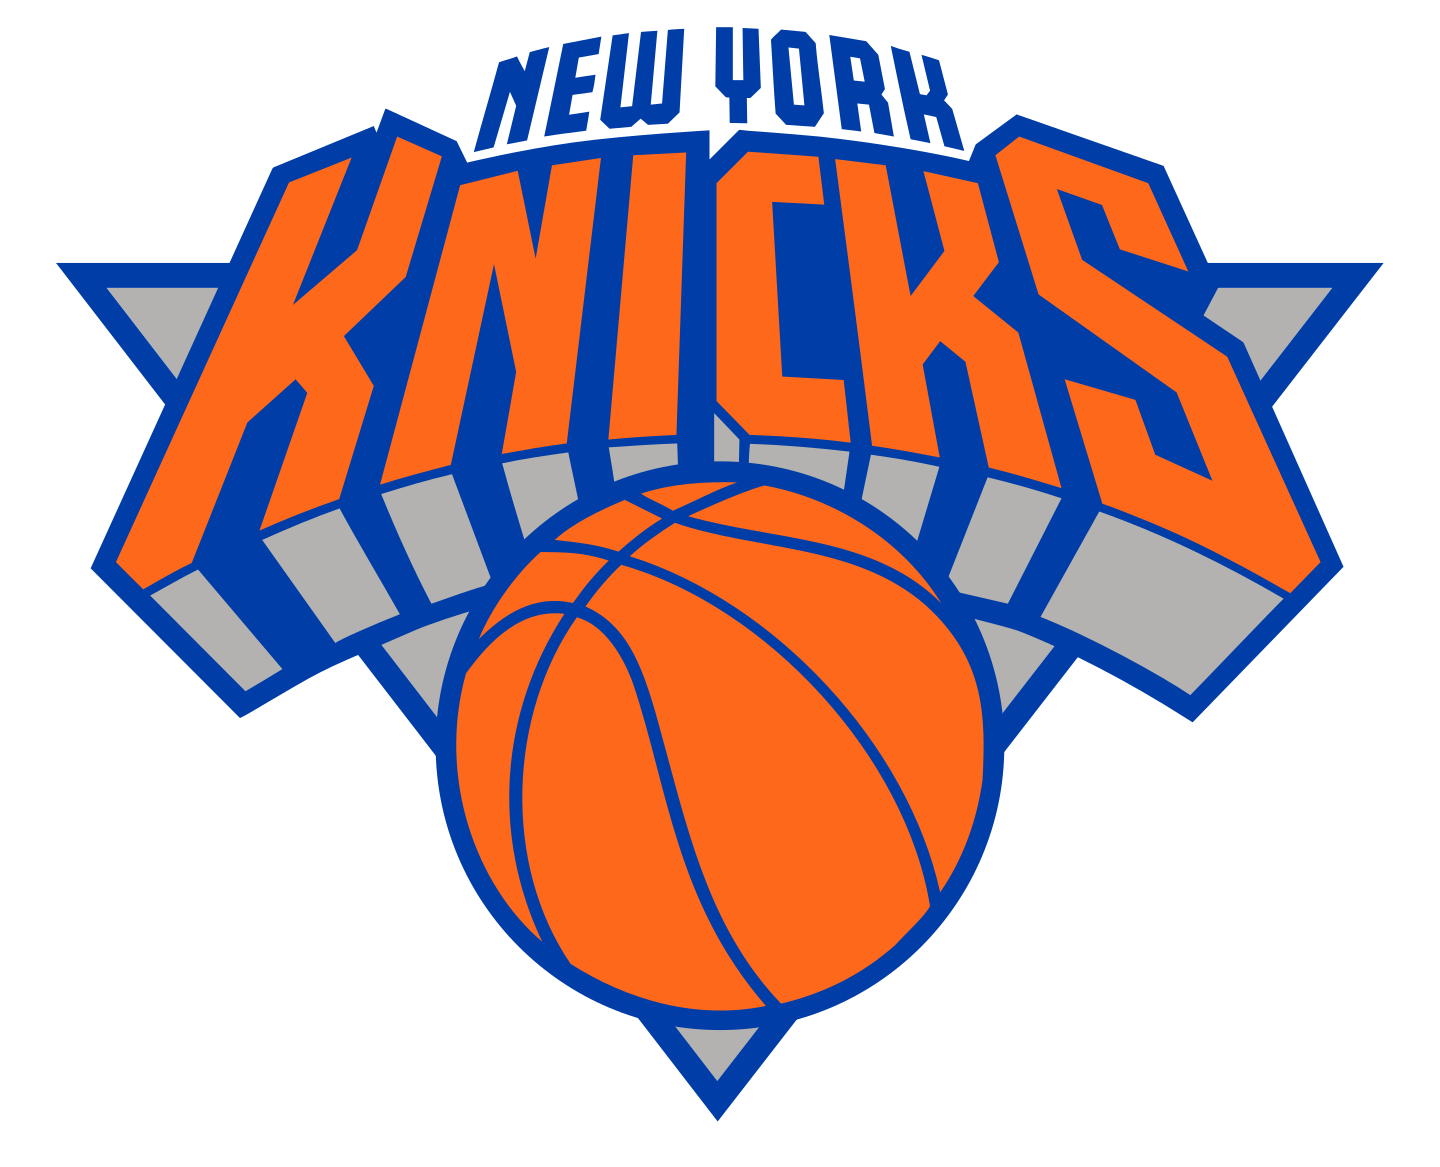 new york knicks logo 2 - New York Knicks Logo